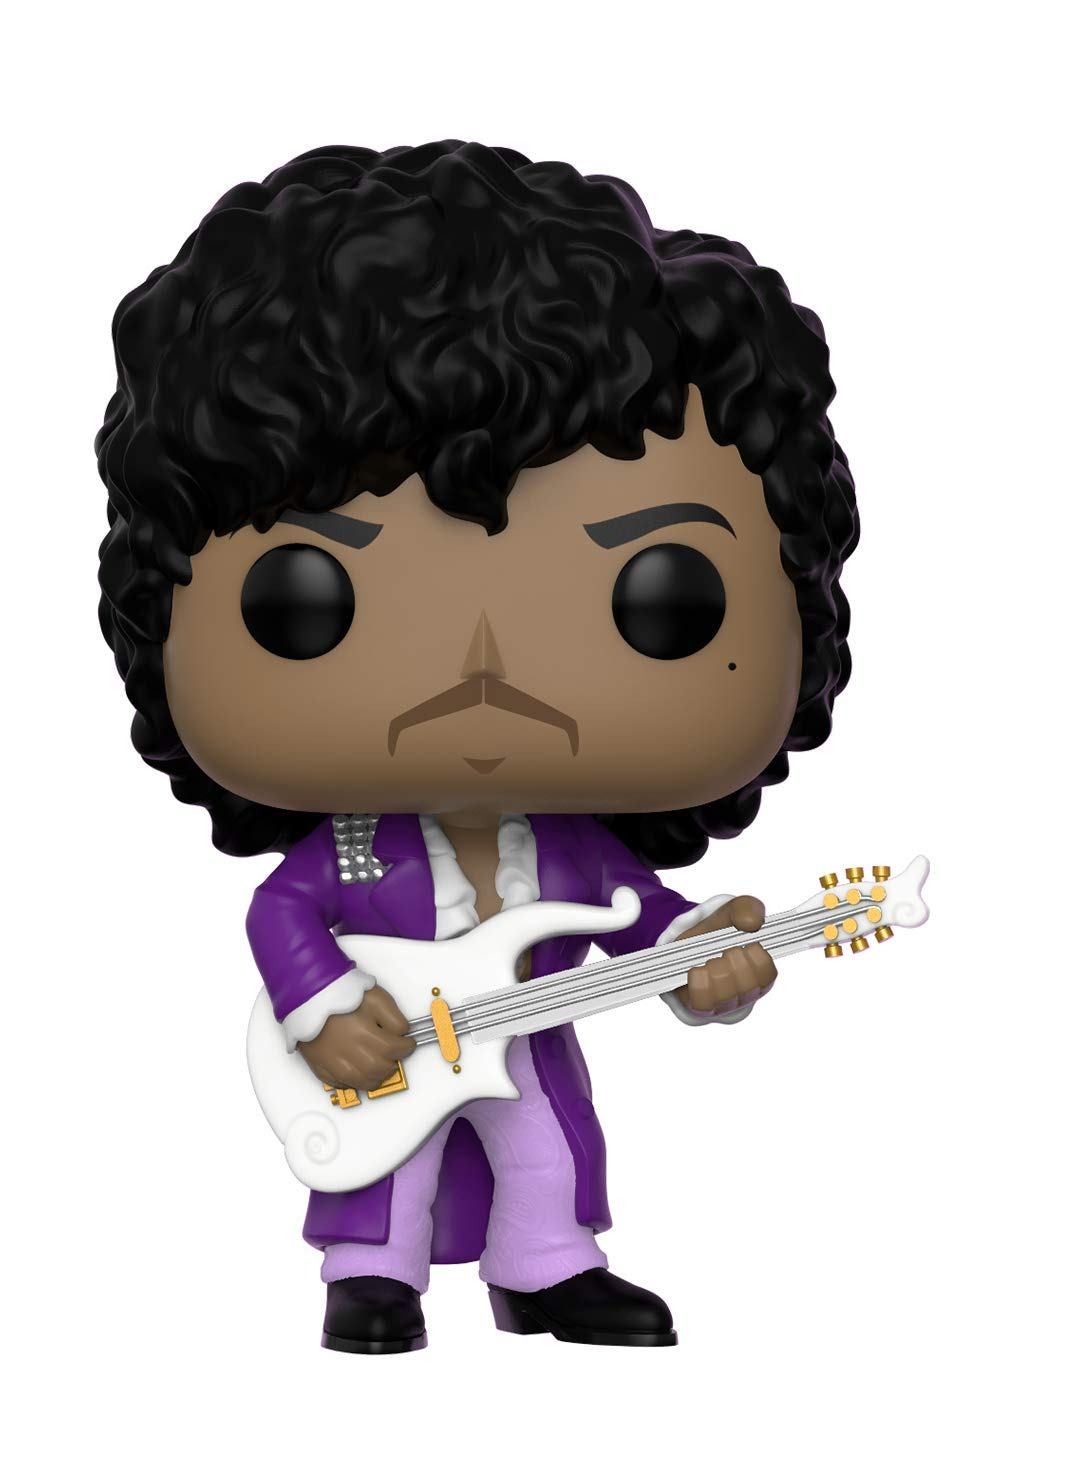 Check Out Funko Pop PrinceProducts On Amazon!